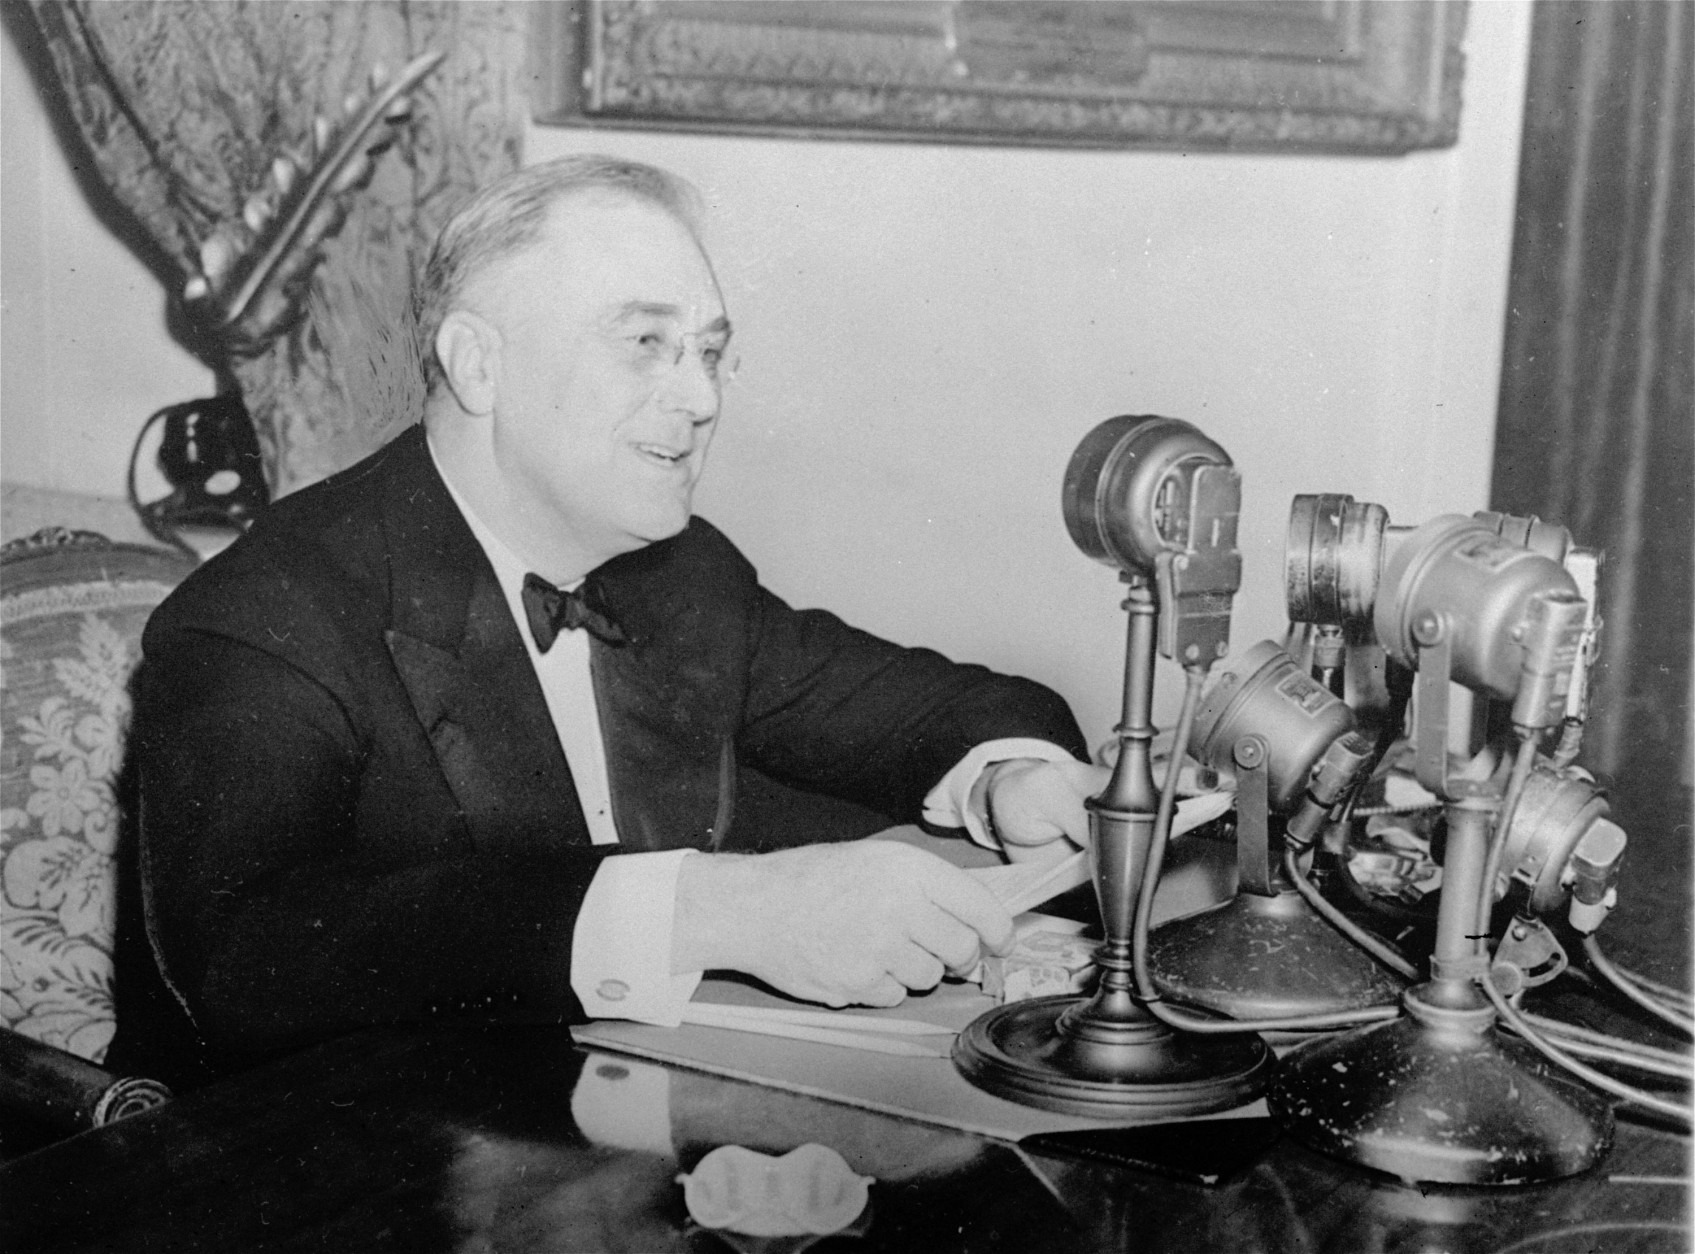 President Franklin D. Roosevelt talks to the nation in a fireside chat from the White House in this November 1937 photo.  FDR introduced his radio talks to explain administration policies and to appeal to the people for support for them during the difficult 1930's.  (AP Photo)